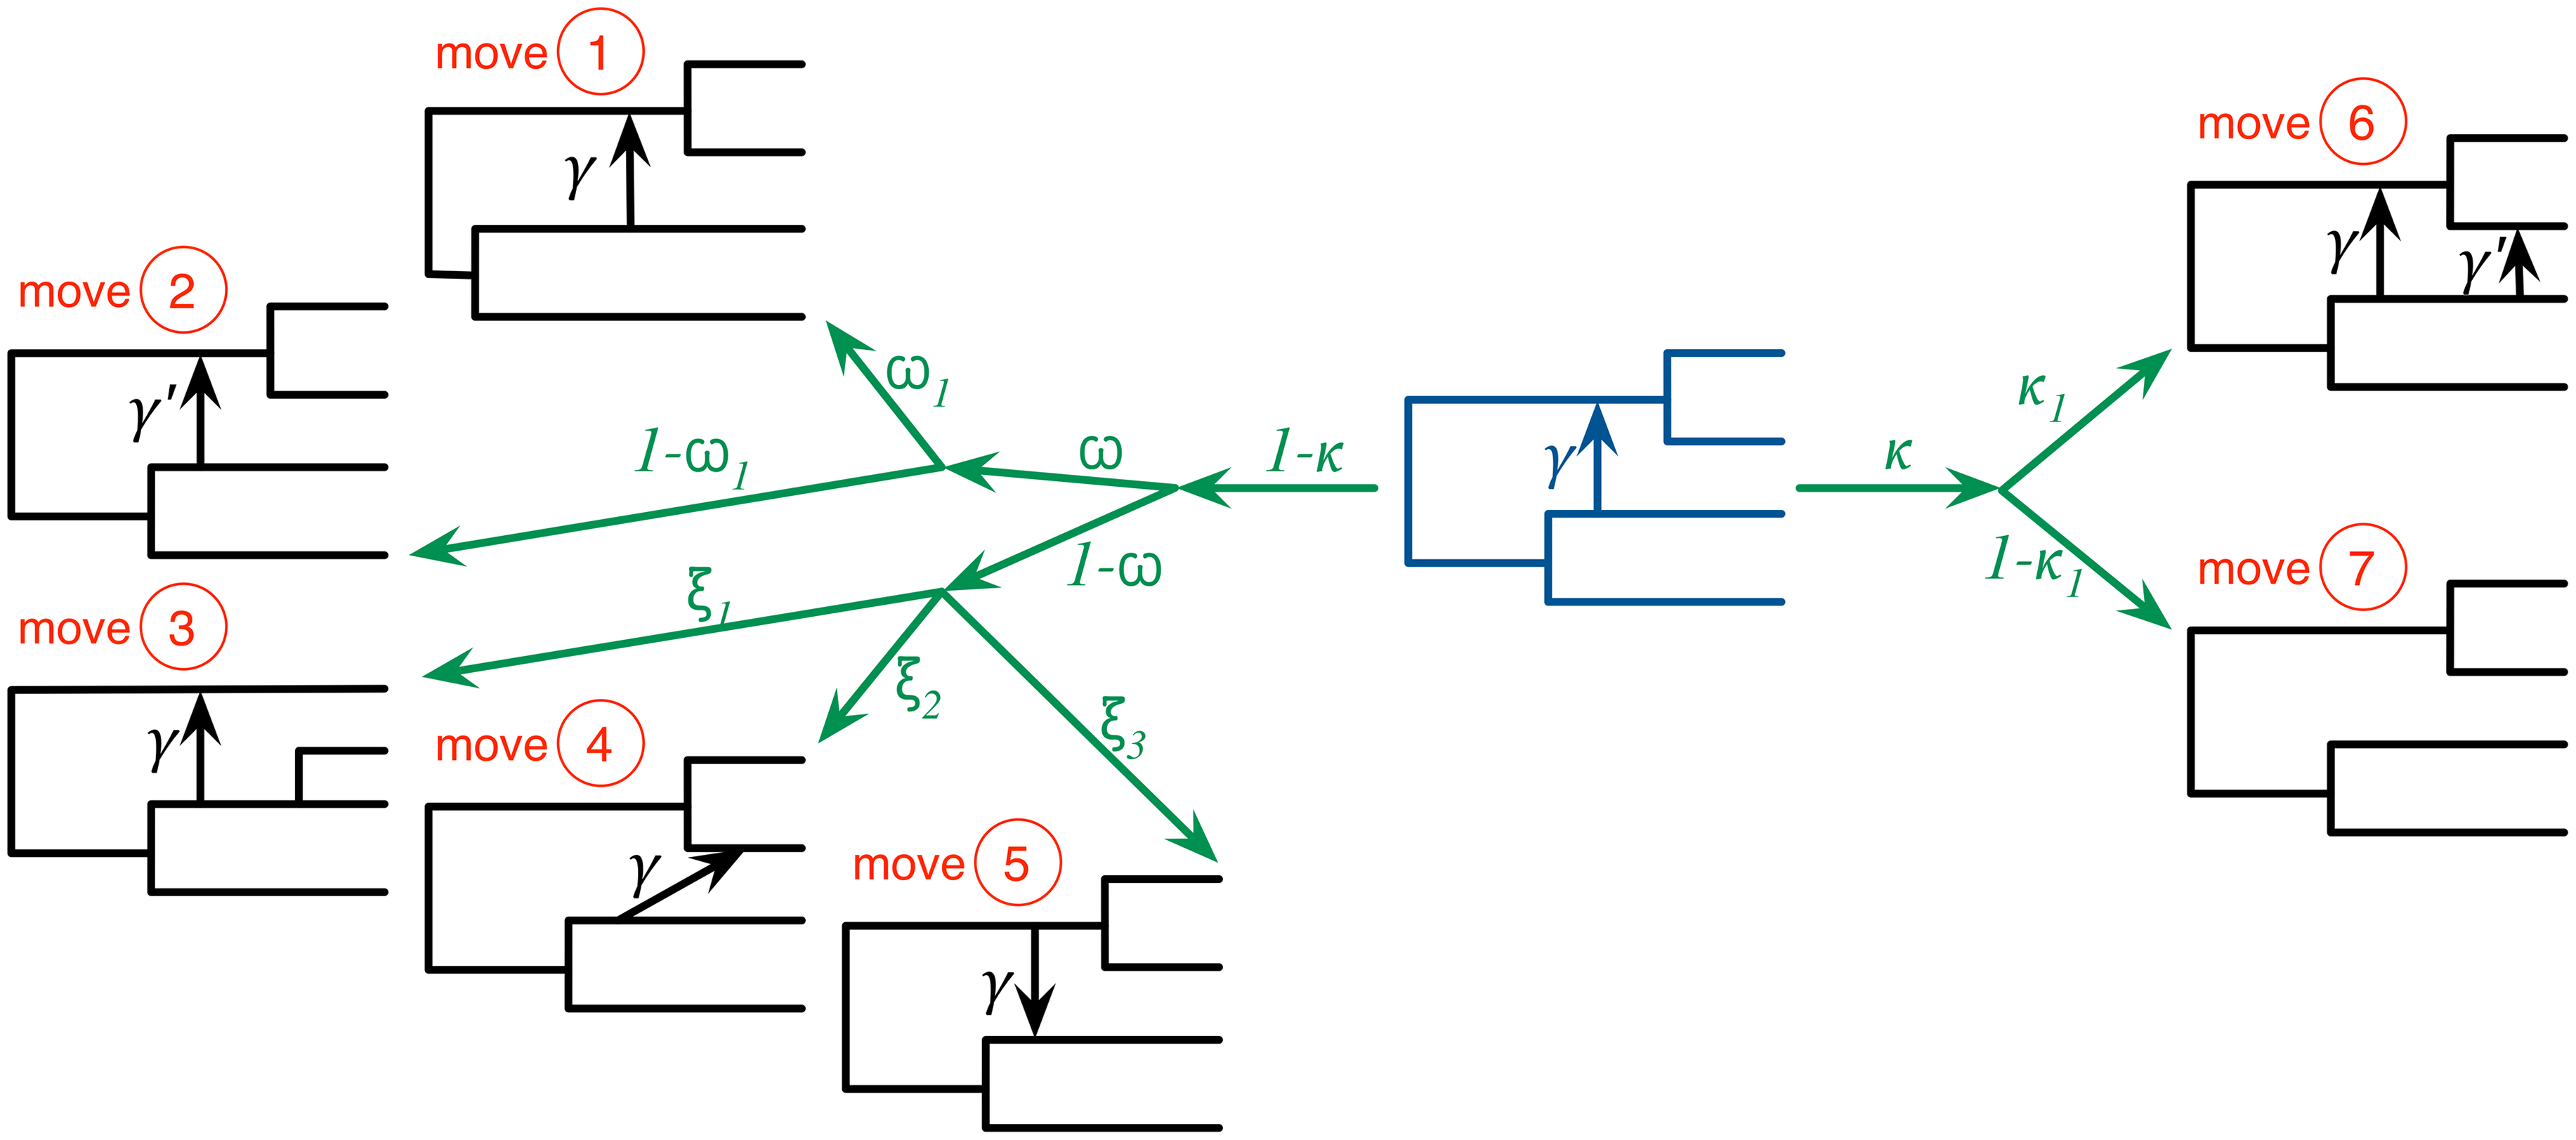 The seven moves that the MCMC sampler utilizes can be classified into ones that do not modify the topology of the phylogenetic network (moves 1 and 2), ones that modify the topology but do not change the model's dimensions (moves 3, 4, and 5), and ones that modify the topology and model's dimensions (moves 6 and 7).